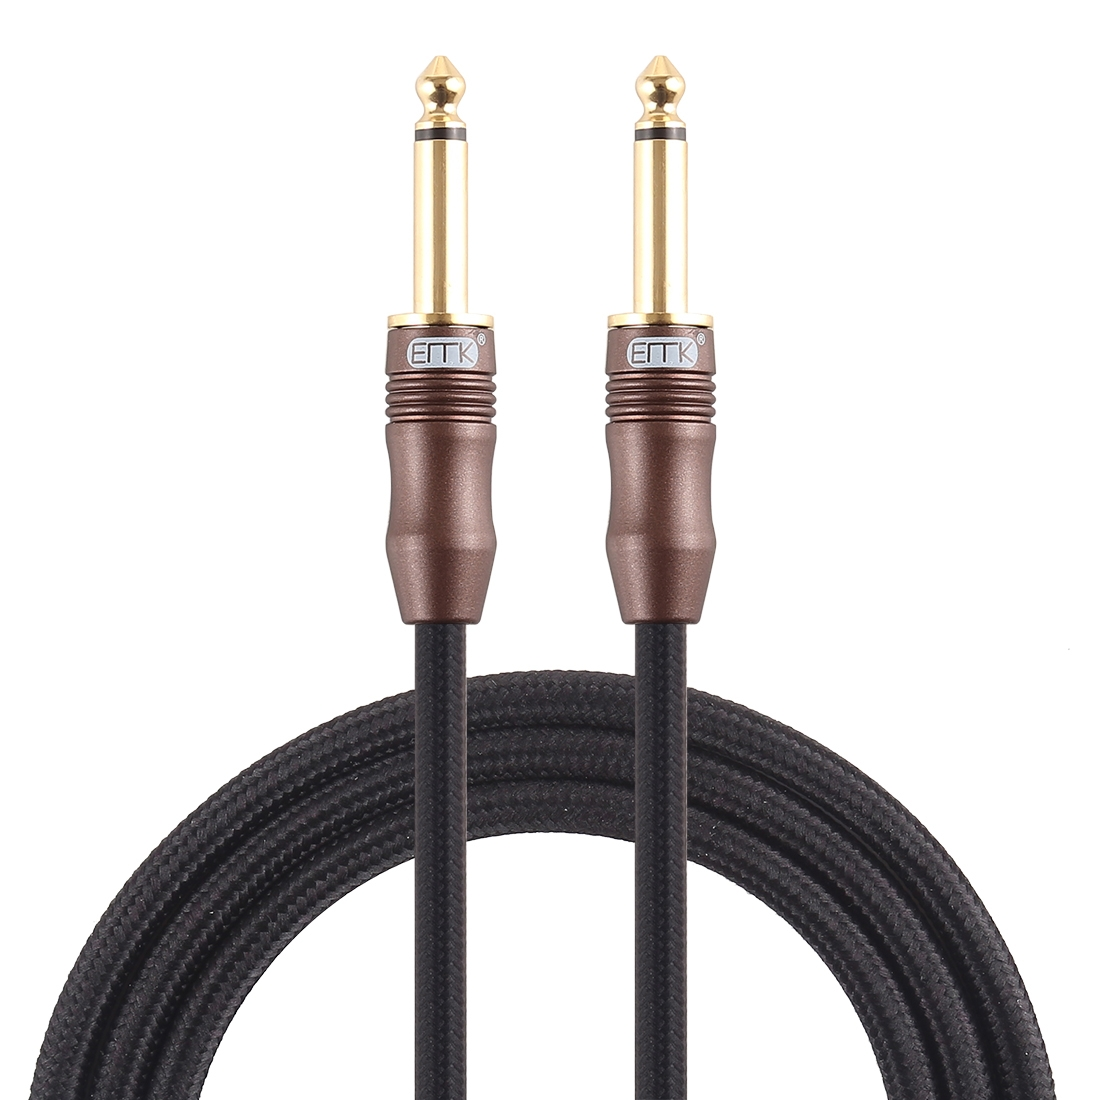 EMK 6.35mm Male to Male 3 Section Gold-plated Plug Cotton Braided Audio Cable for Guitar Amplifier Mixer, Length: 1.5m (Black)